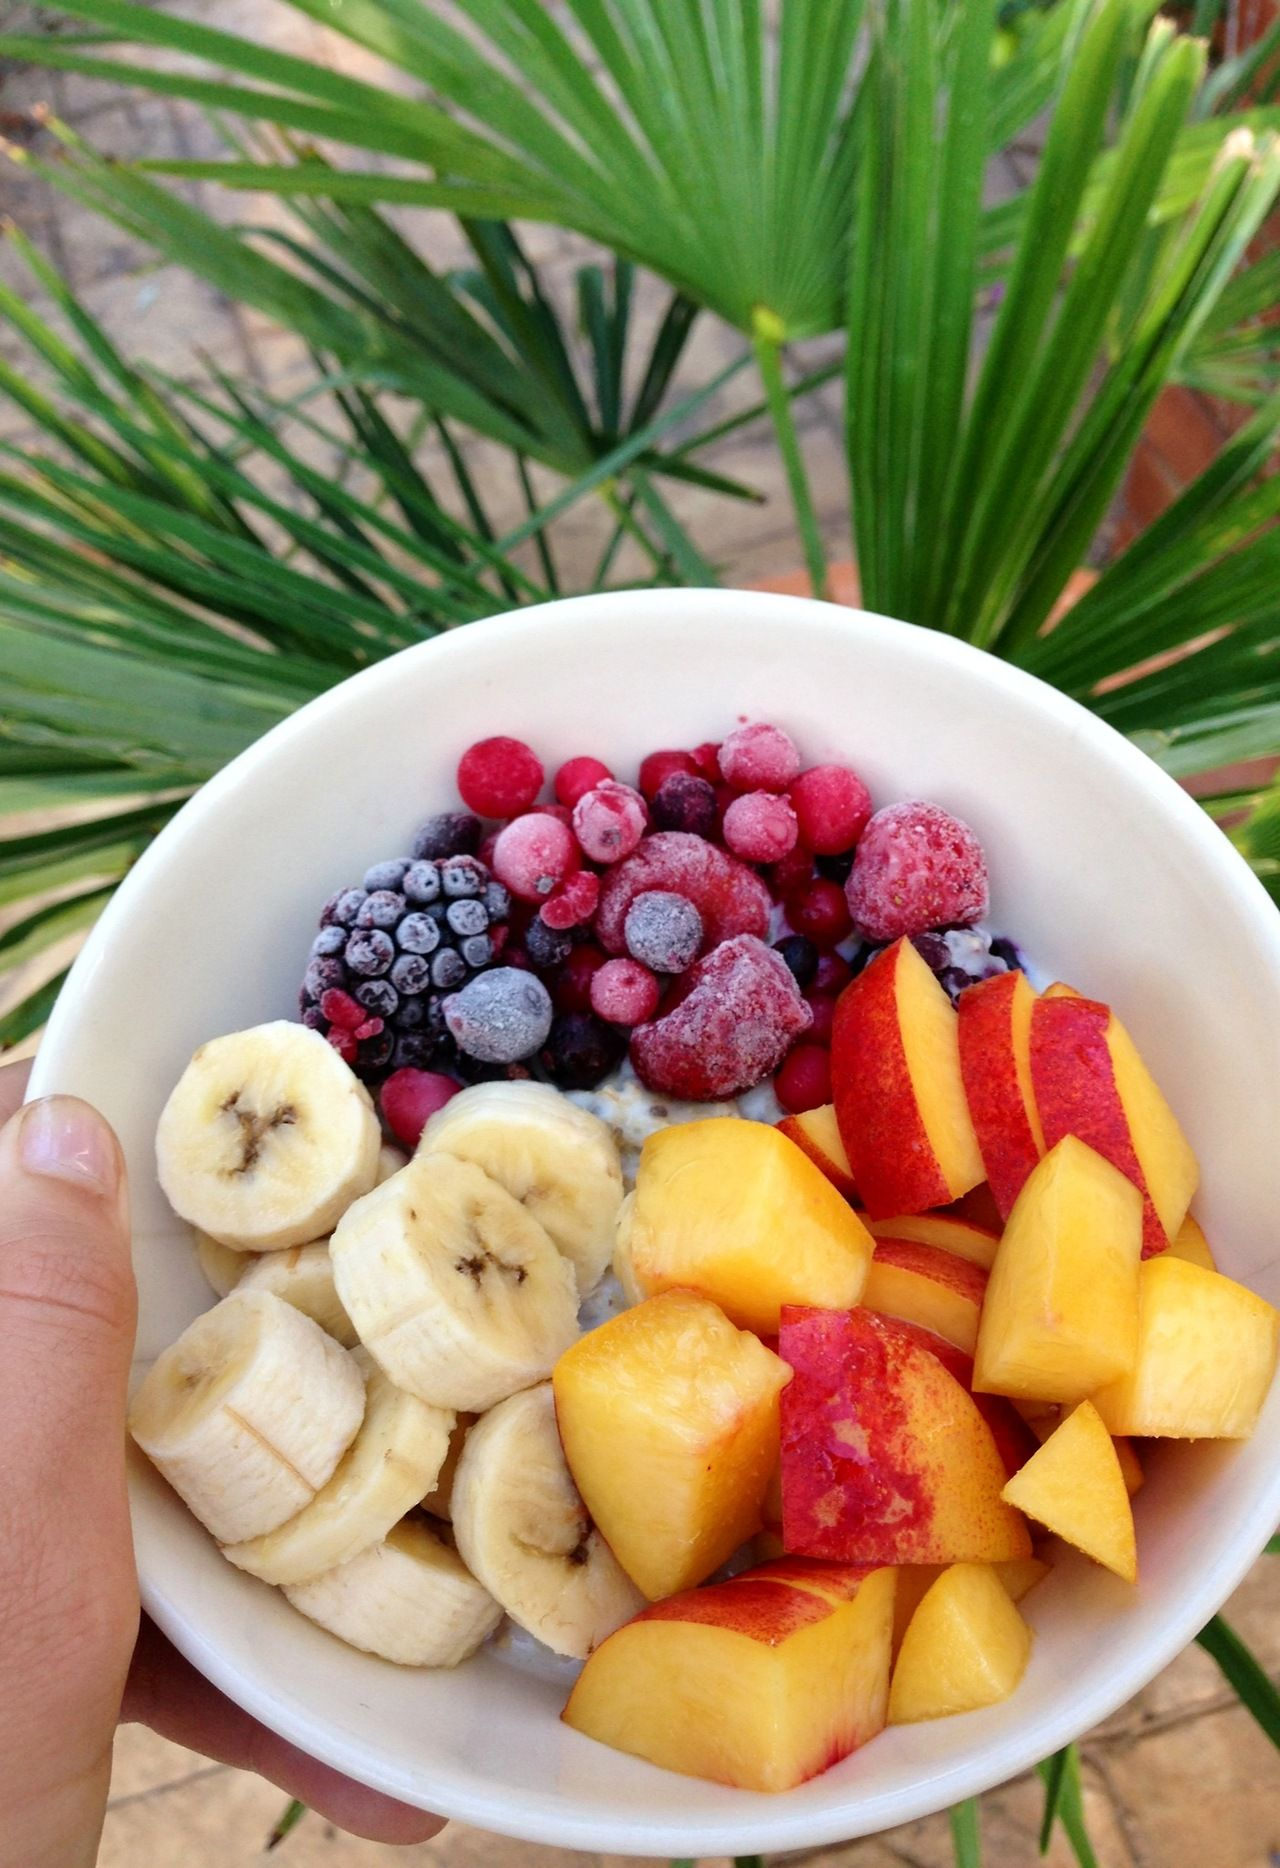 Farewell letter from food tropical fruits and soloing theberry clean eating recipeshealthy eatinghealthy foodshealthy forumfinder Image collections